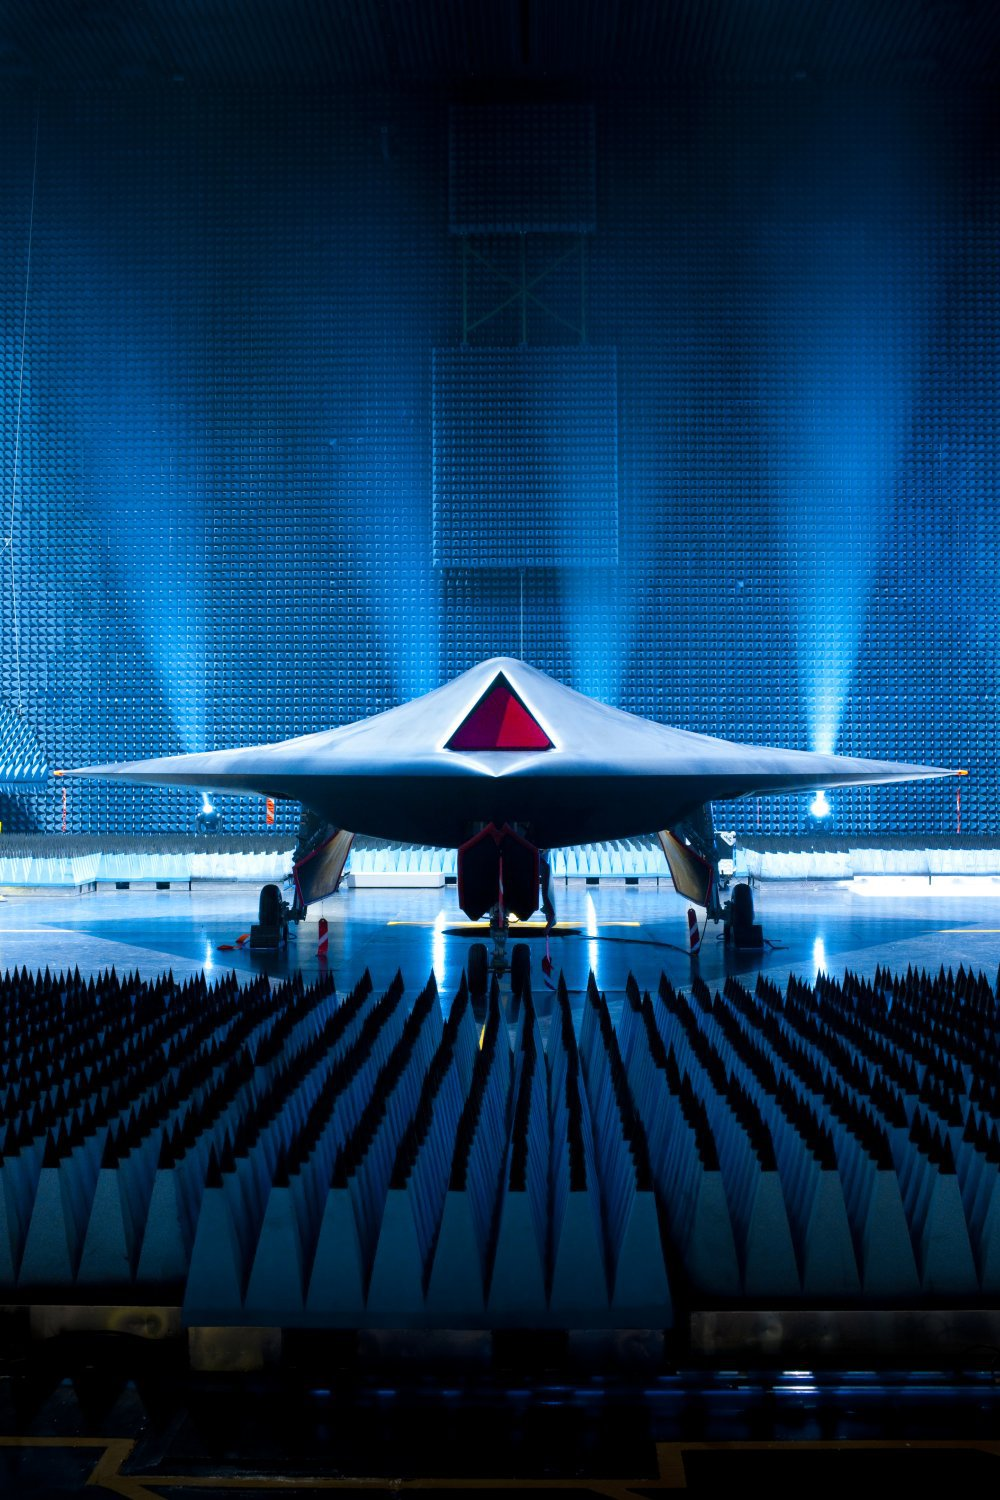 BAE Taranis Jet UCAV Low Observable 2 <!  :en  >BAE Taranis UCAV (Unmanned Combat Air Vehicle): Meet the New Jet Powered, Weaponized, Low Observable, and Autonomous God of Thunder<!  :  >